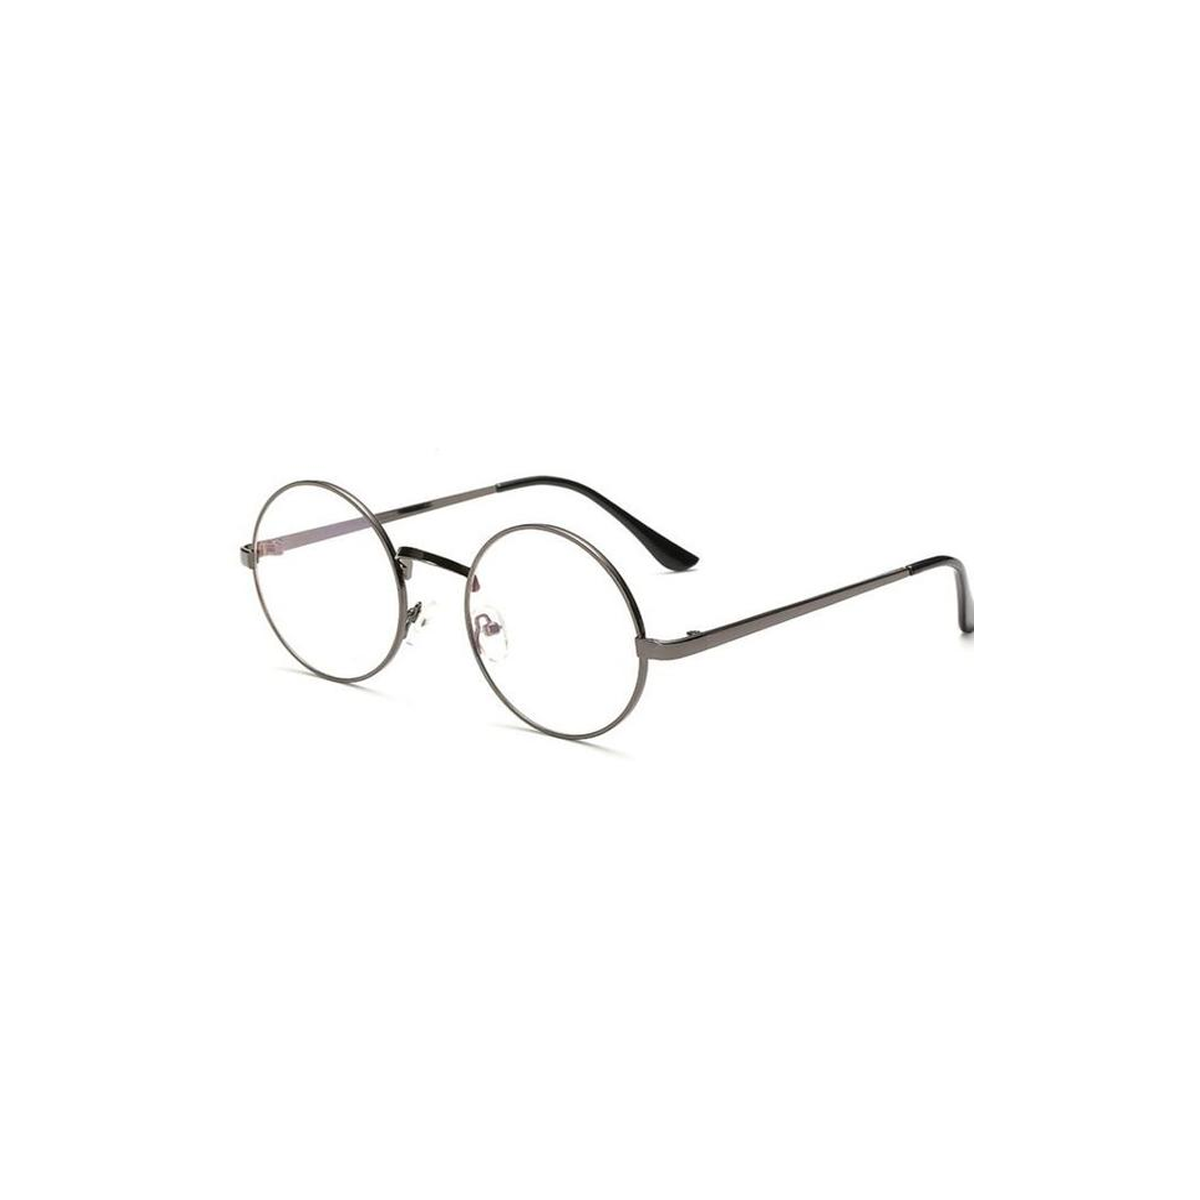 3b1a798db8 cheap small round nerd glasses clear lens unisex gold round metal frame  glasses frame optical men